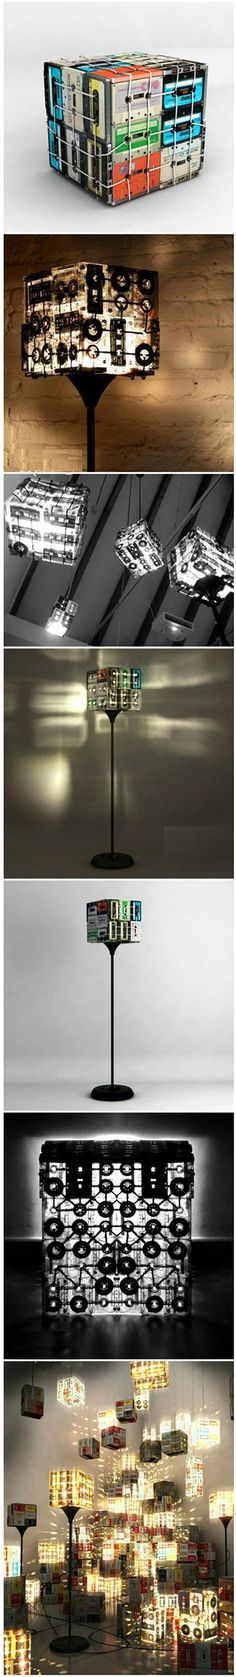 Diy Cool Tapes Lamp | DIY & Crafts Tutorials